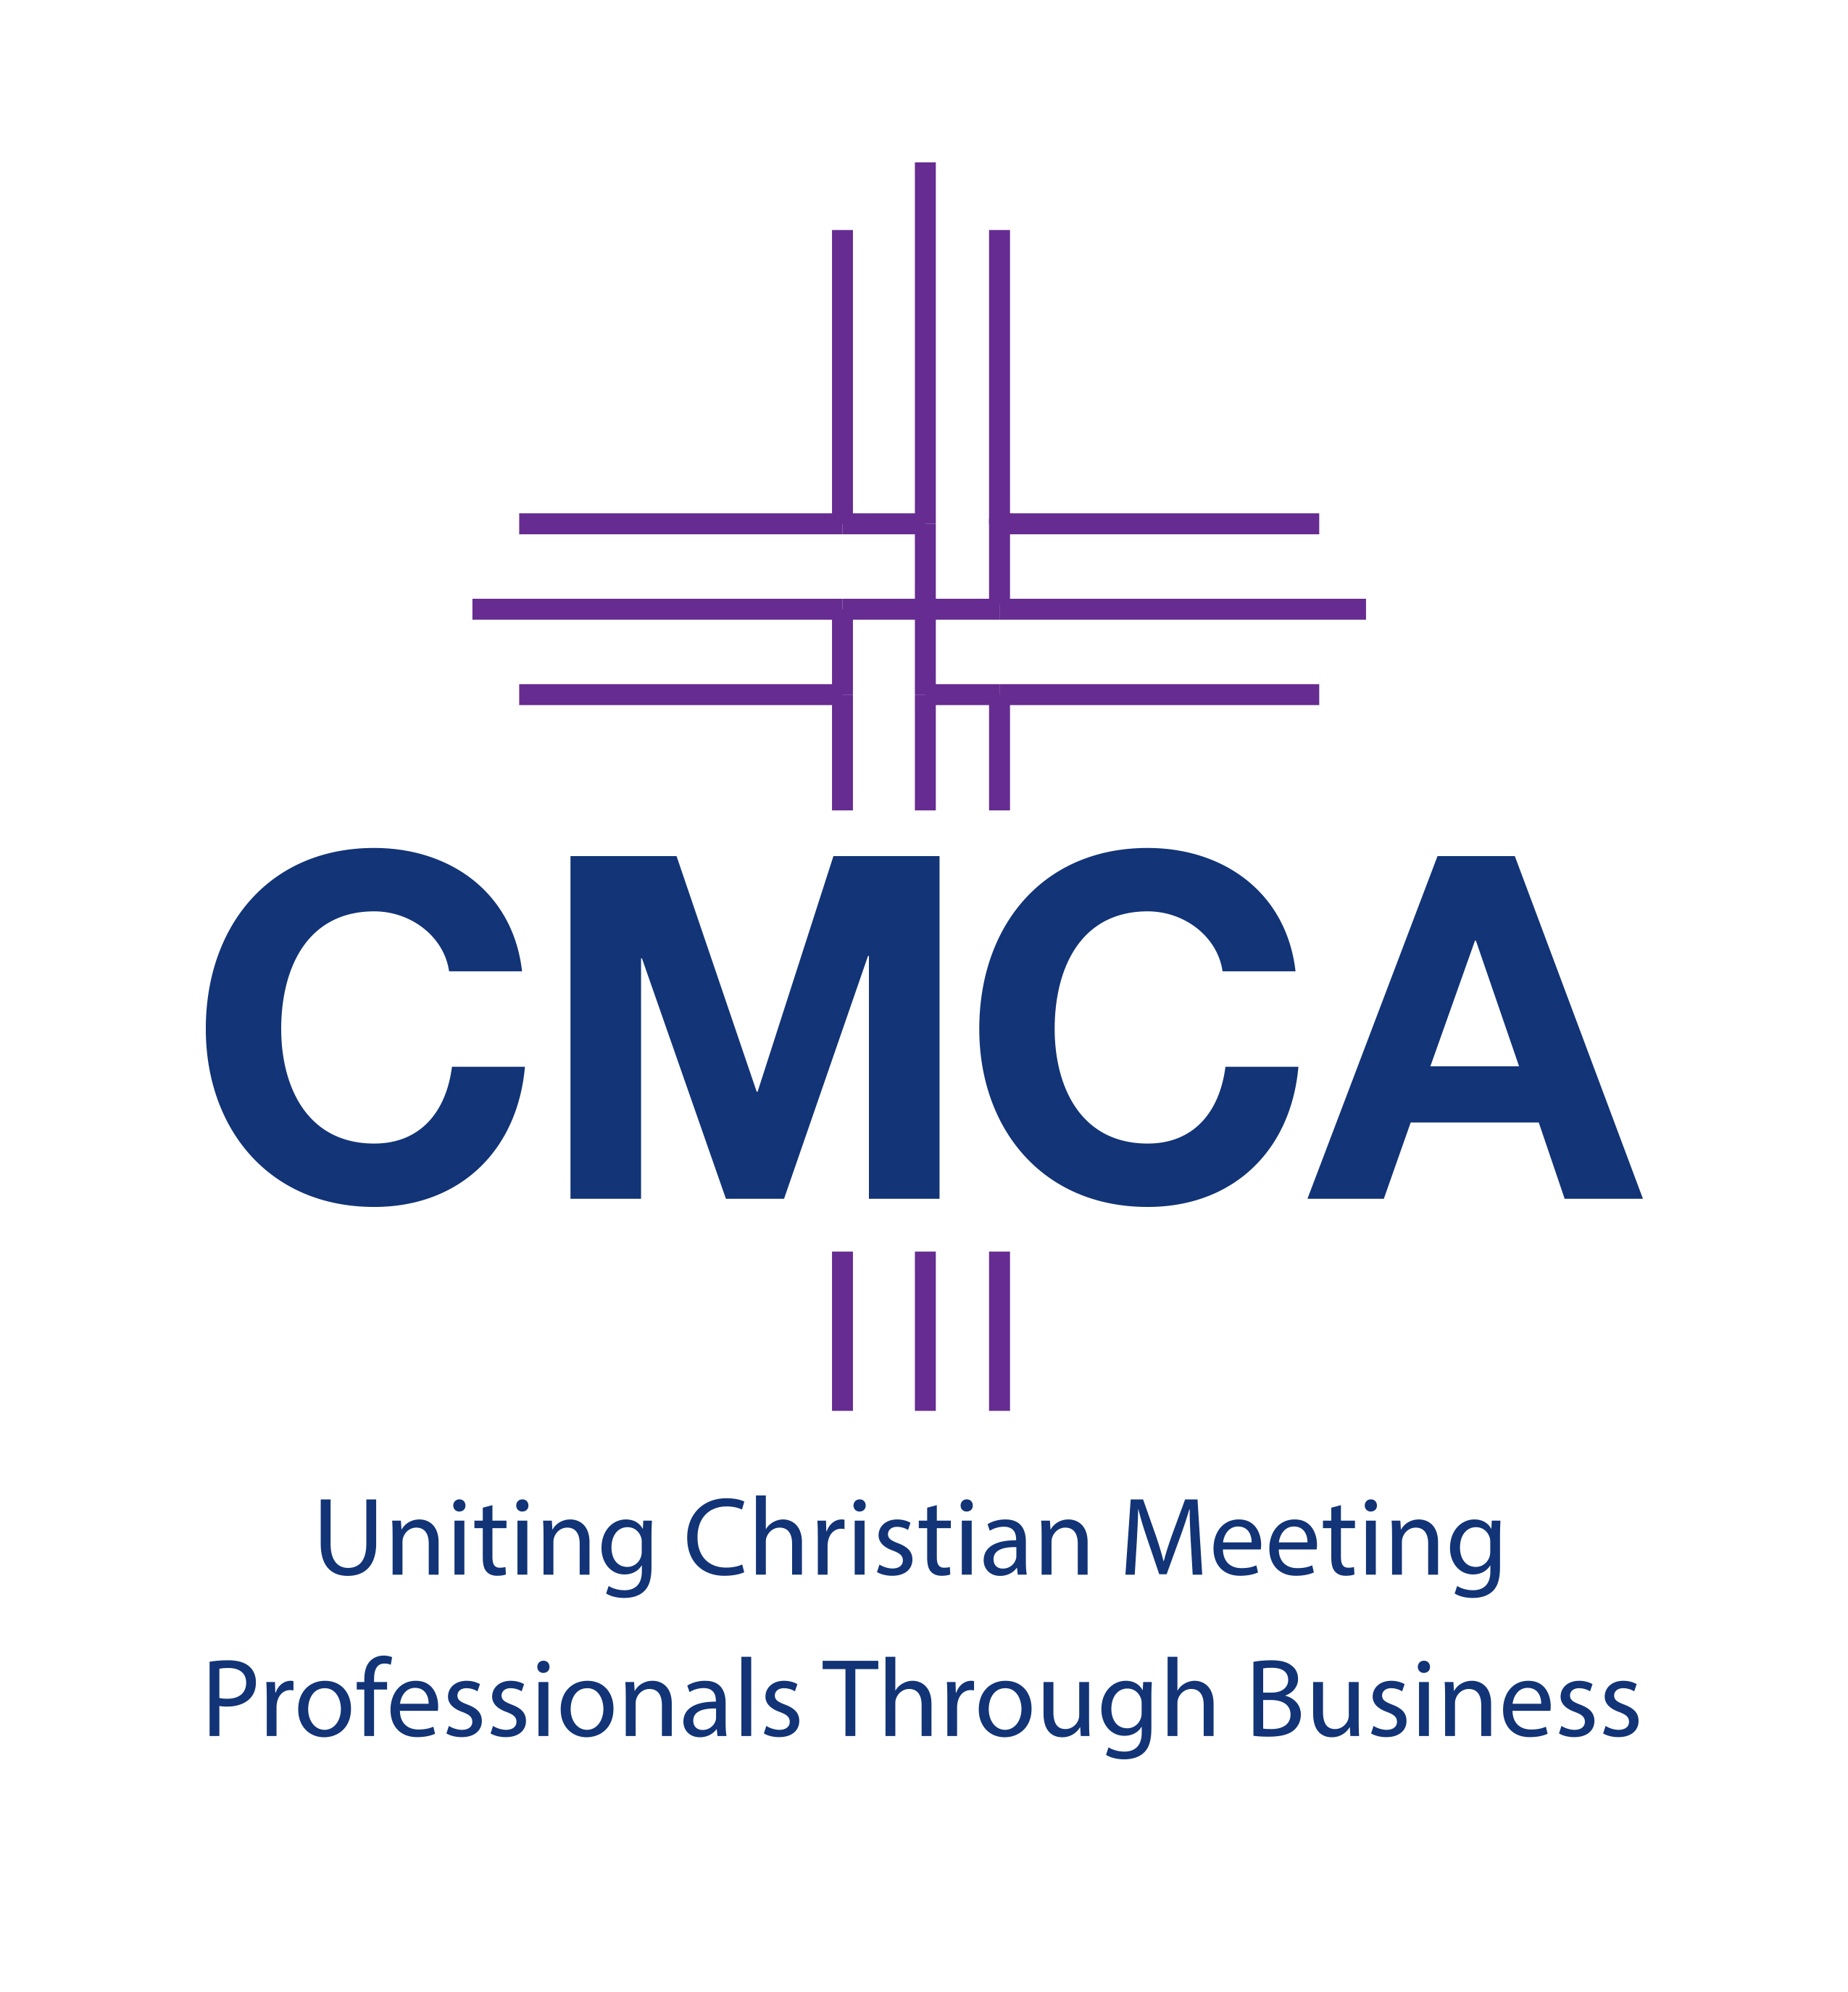 Christian Meetings & Conventions Association (CMCA)